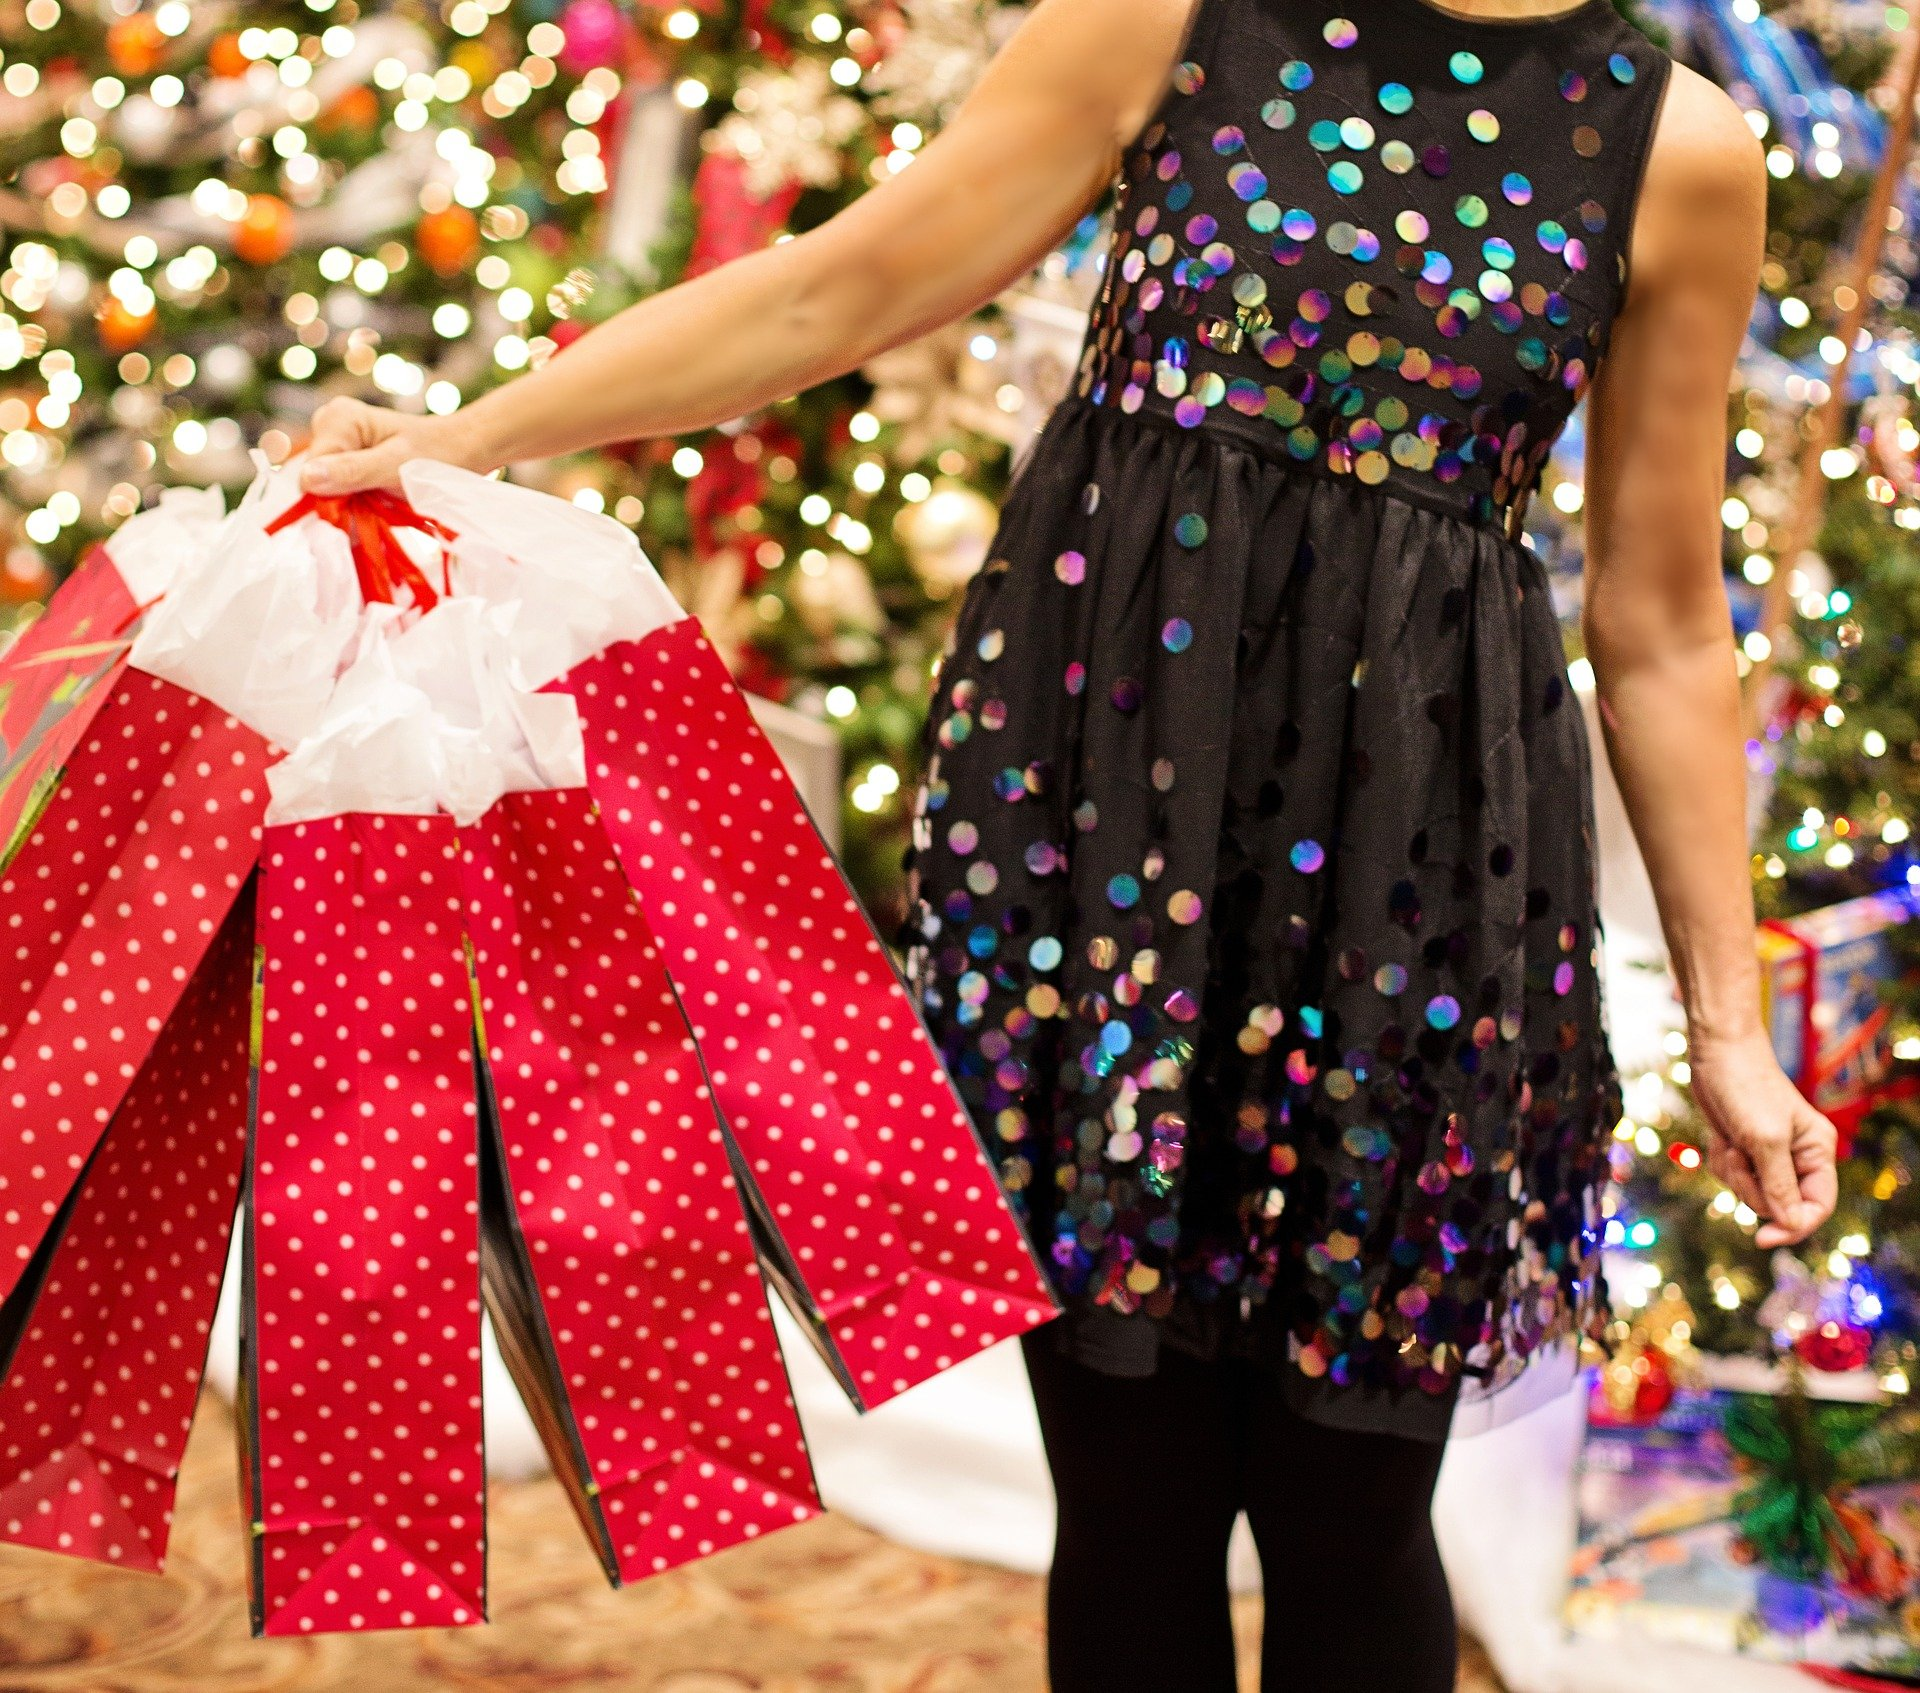 Tips for Surviving the Holiday Season on a Budget